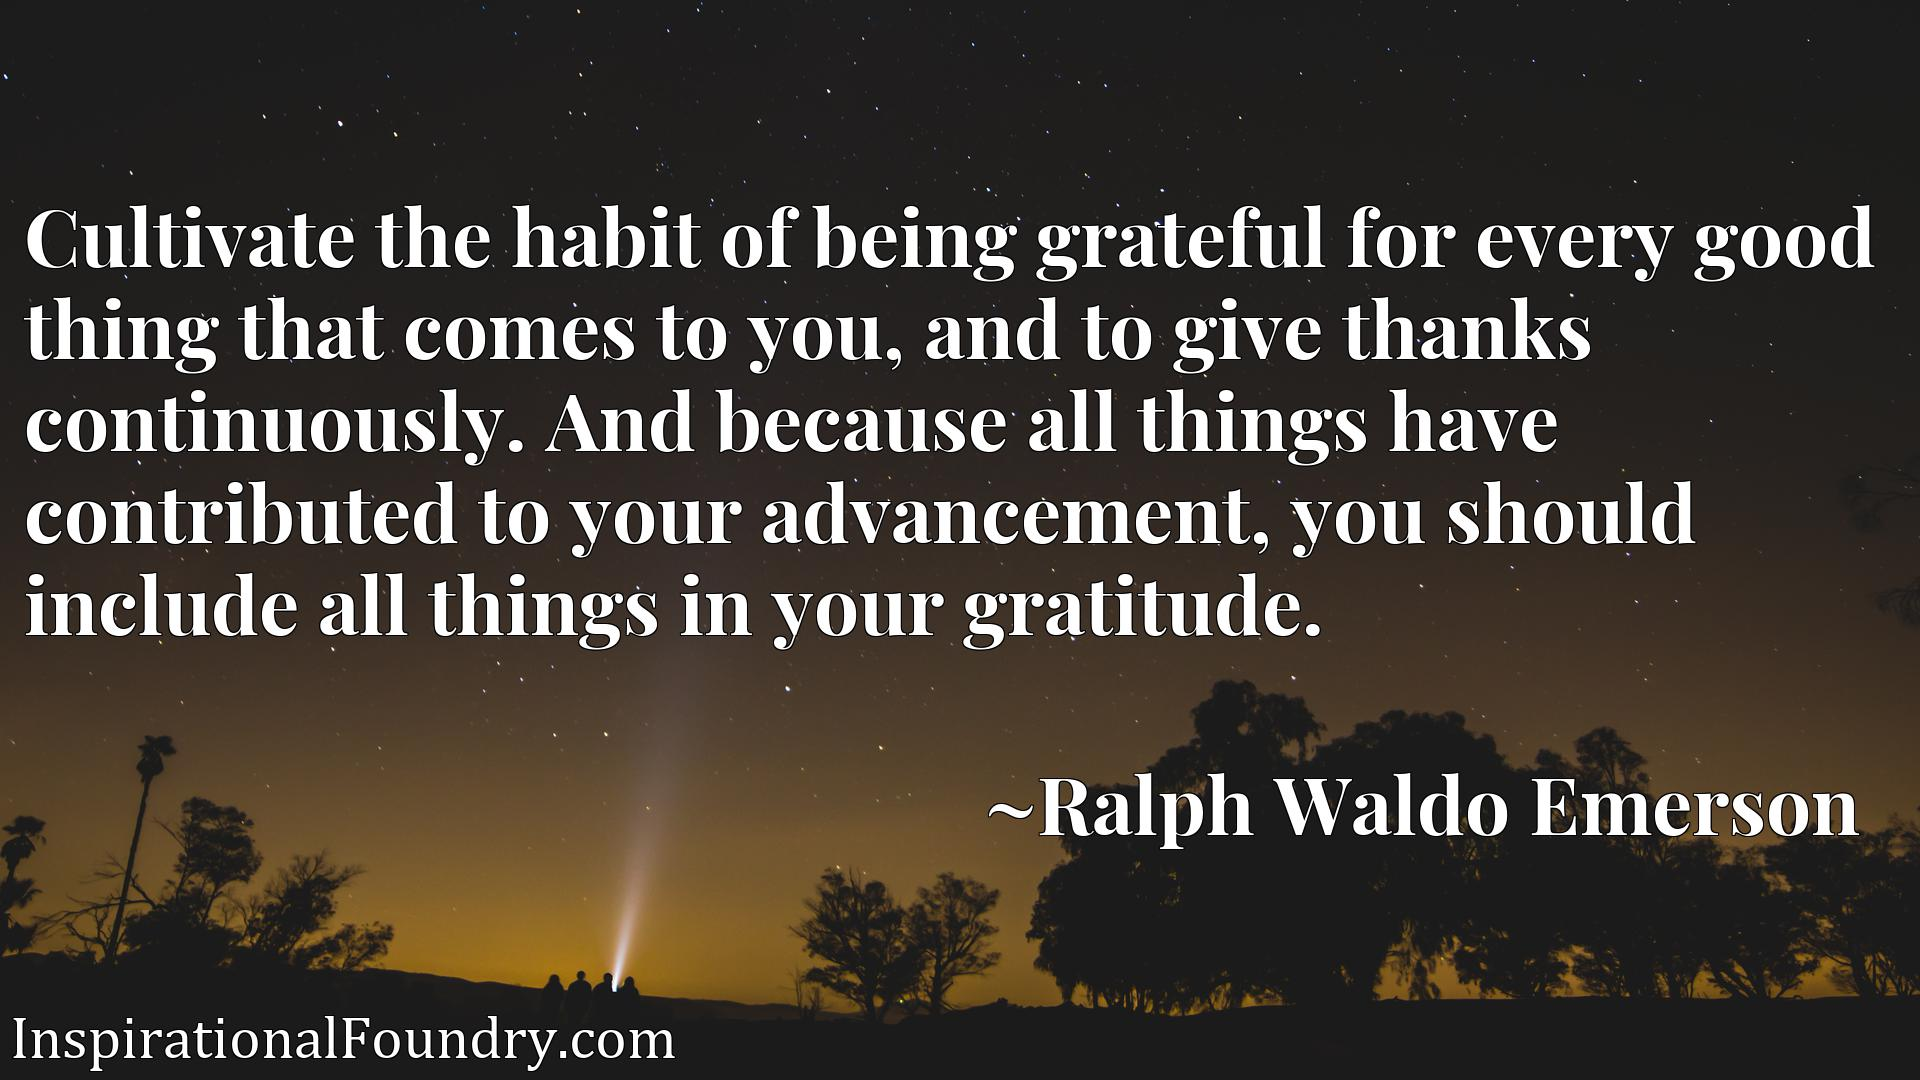 Cultivate the habit of being grateful for every good thing that comes to you, and to give thanks continuously. And because all things have contributed to your advancement, you should include all things in your gratitude.